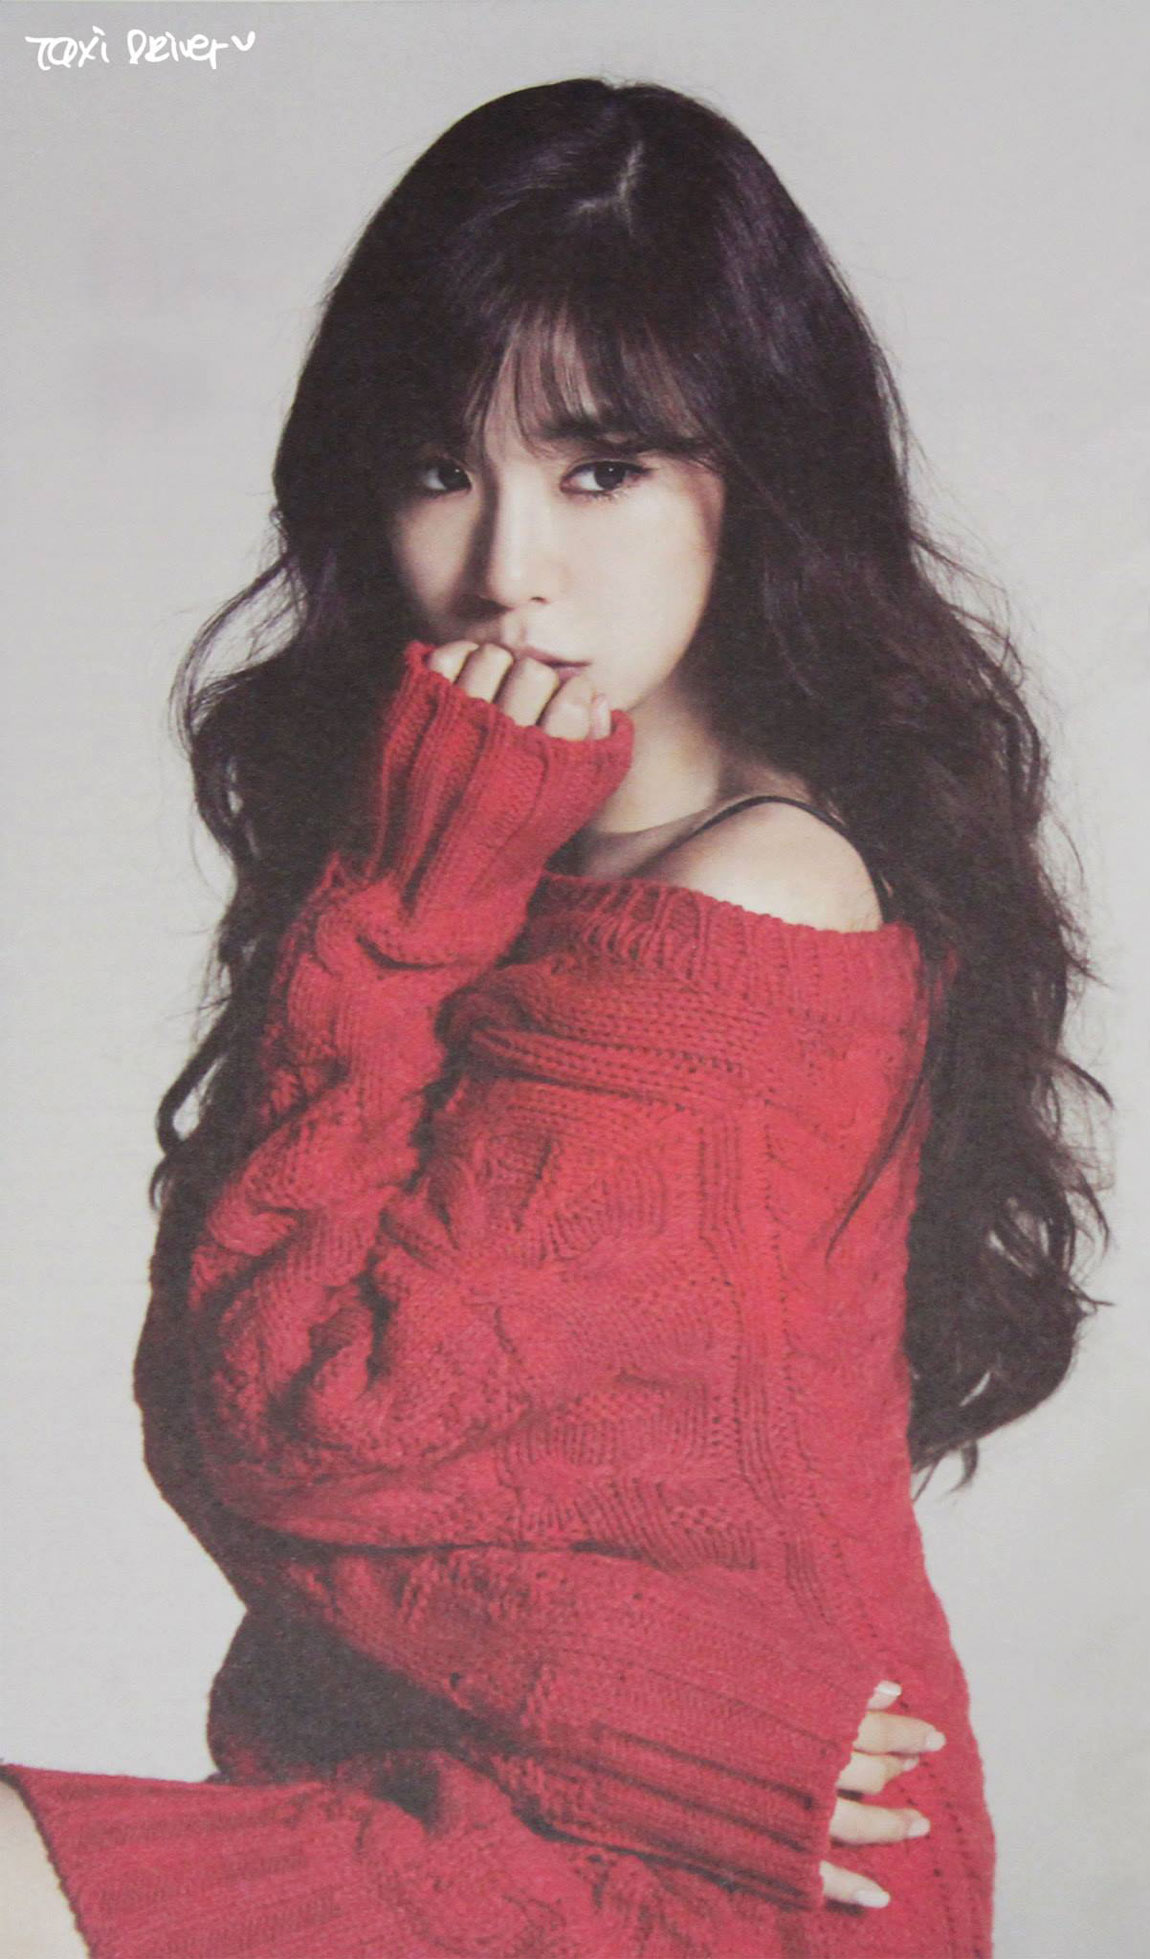 Girls Generation Tiffany 2014 calendar